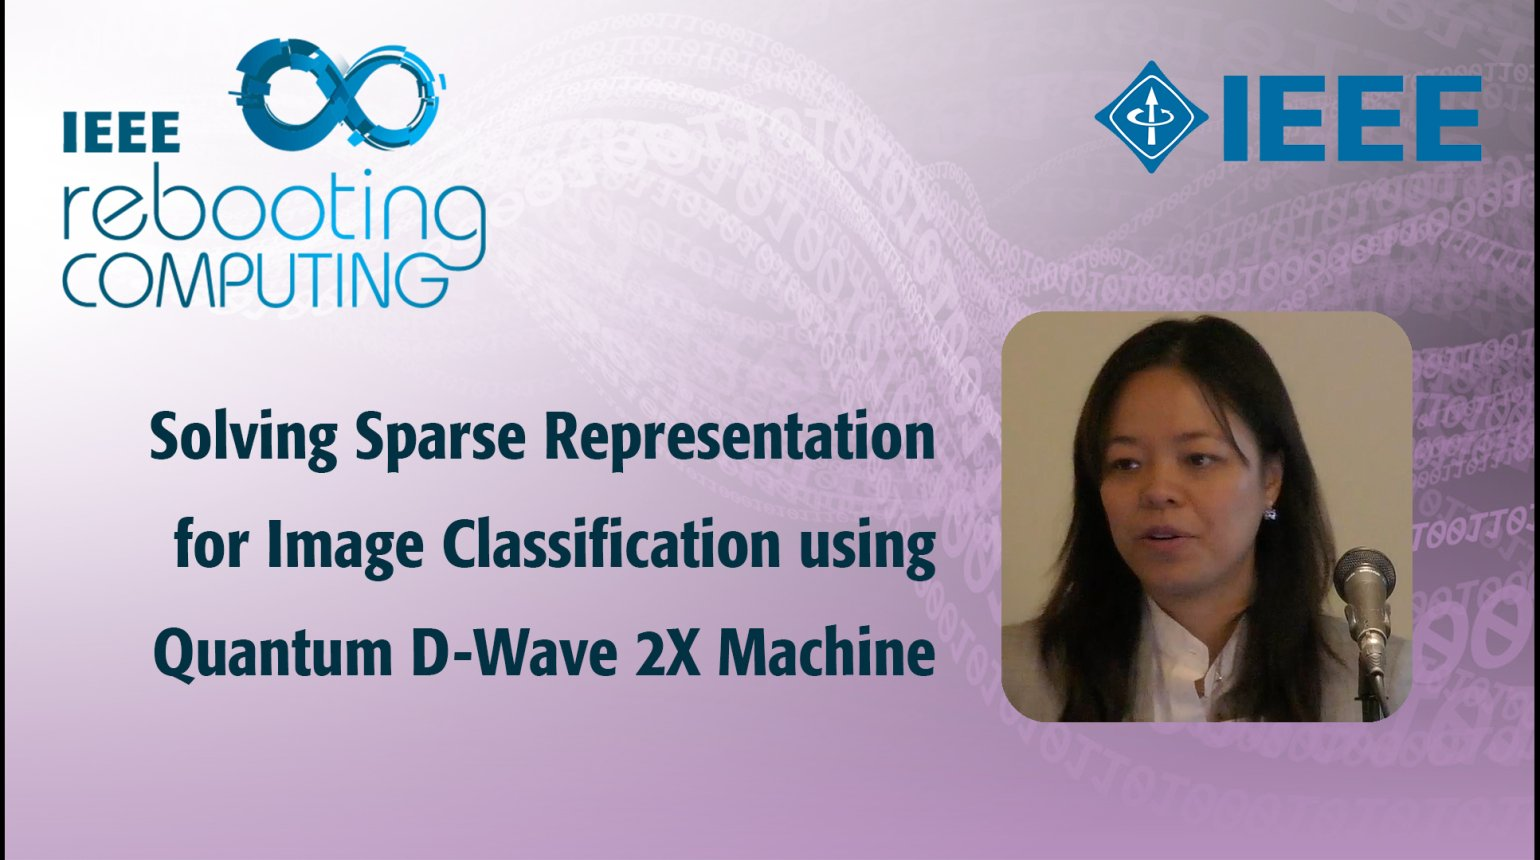 Solving Sparse Representation for Image Classification using Quantum D-Wave 2X Machine - IEEE Rebooting Computing 2017